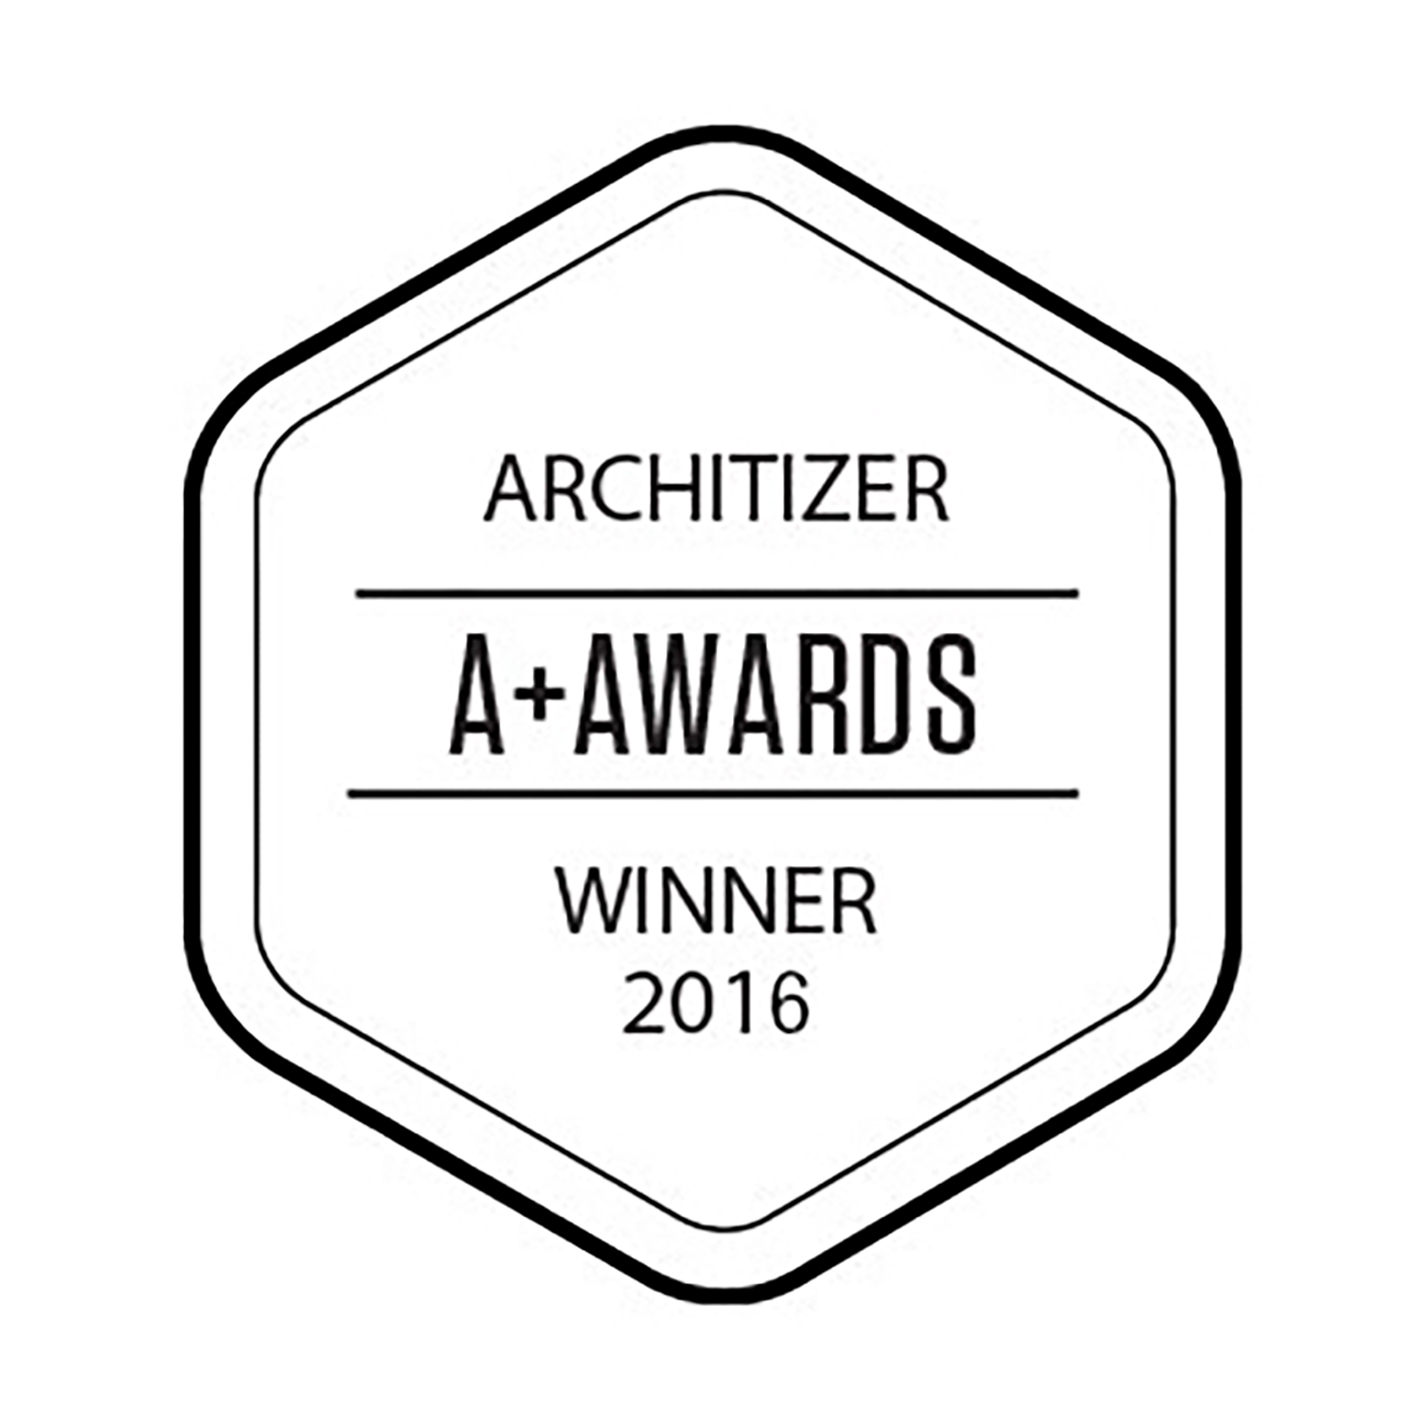 ARCHITIZER-A+AWARDS-WINNER-2016.jpg